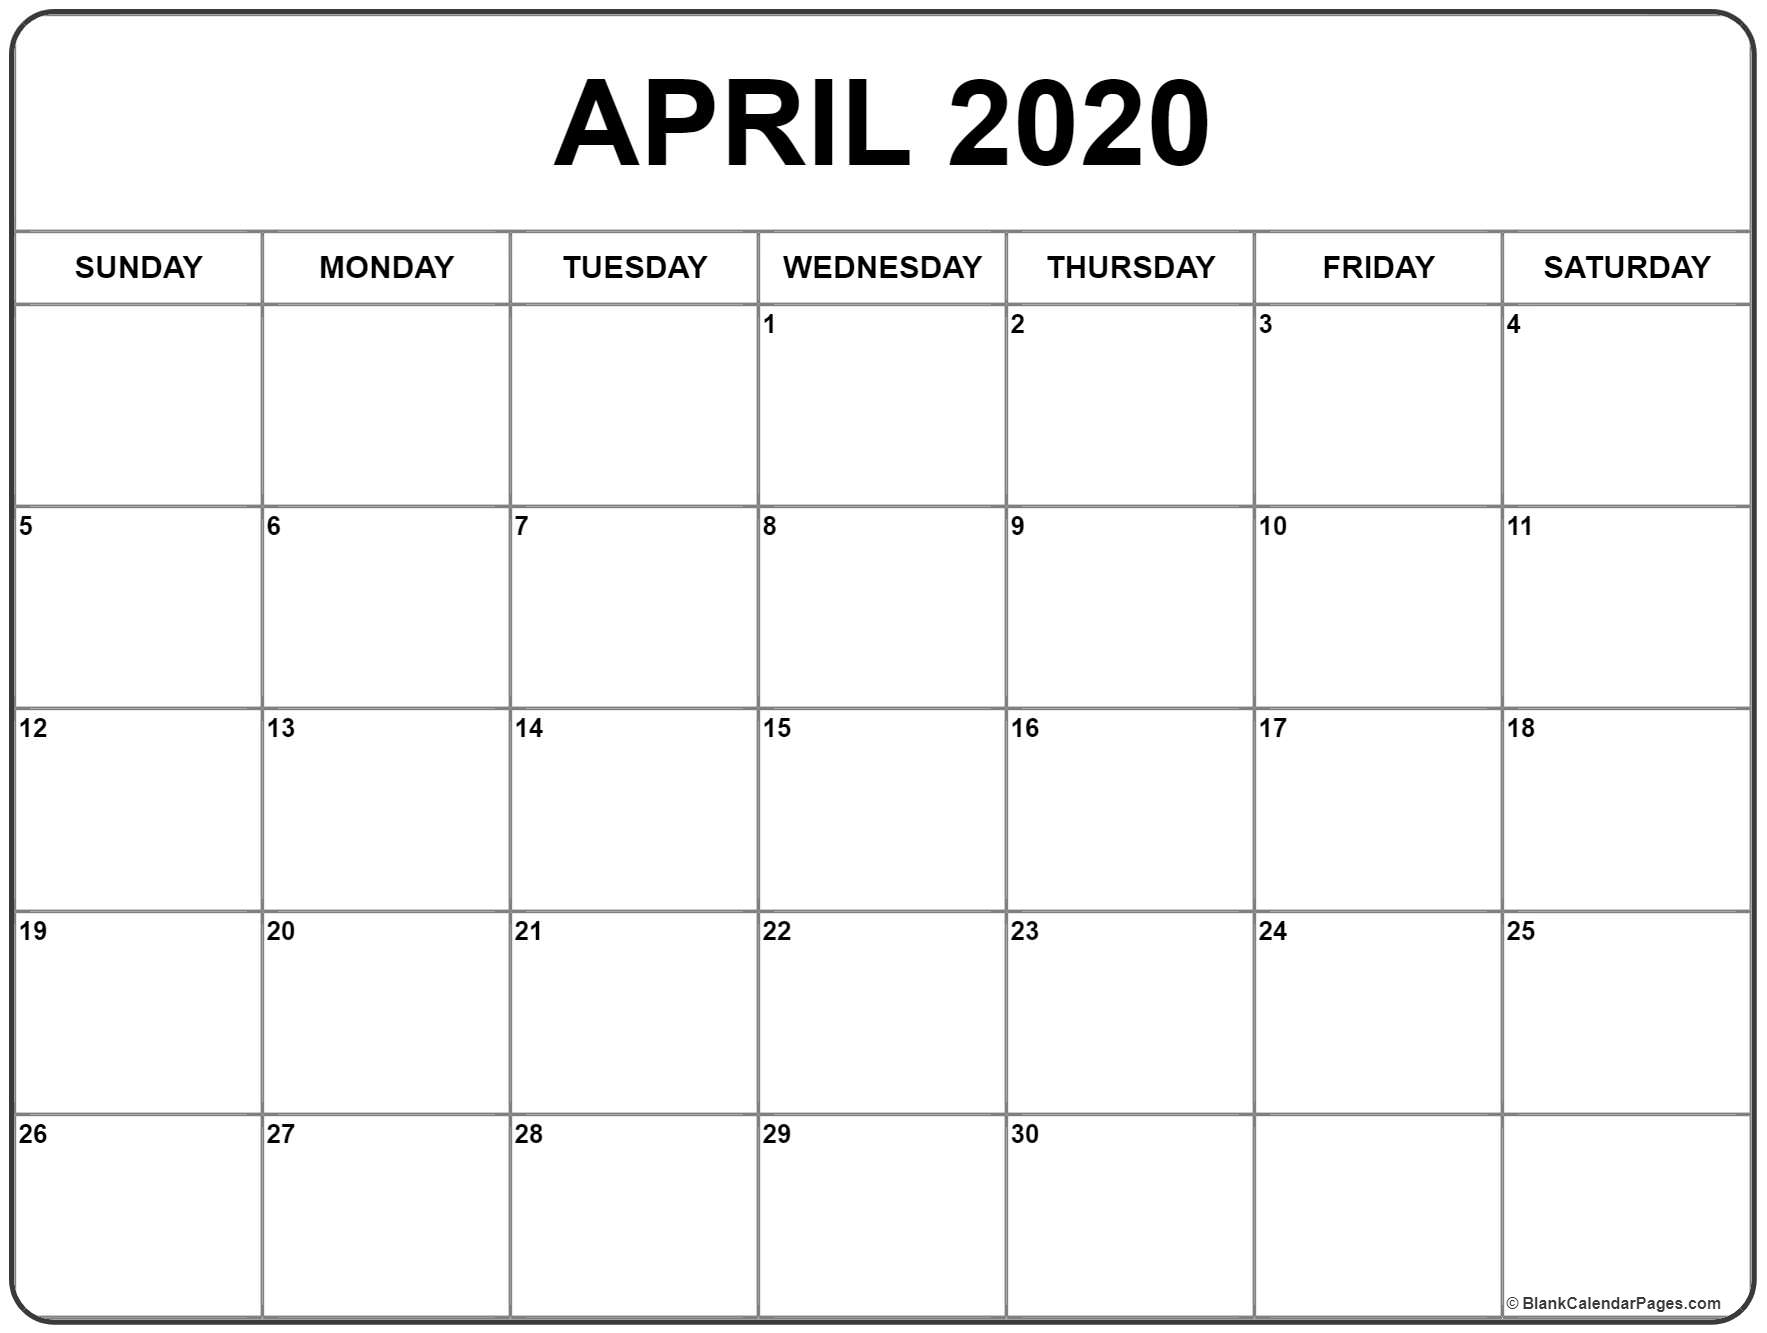 April 2020 Calendar | Free Printable Monthly Calendars for Free Printable Calendar 2020 Motivational